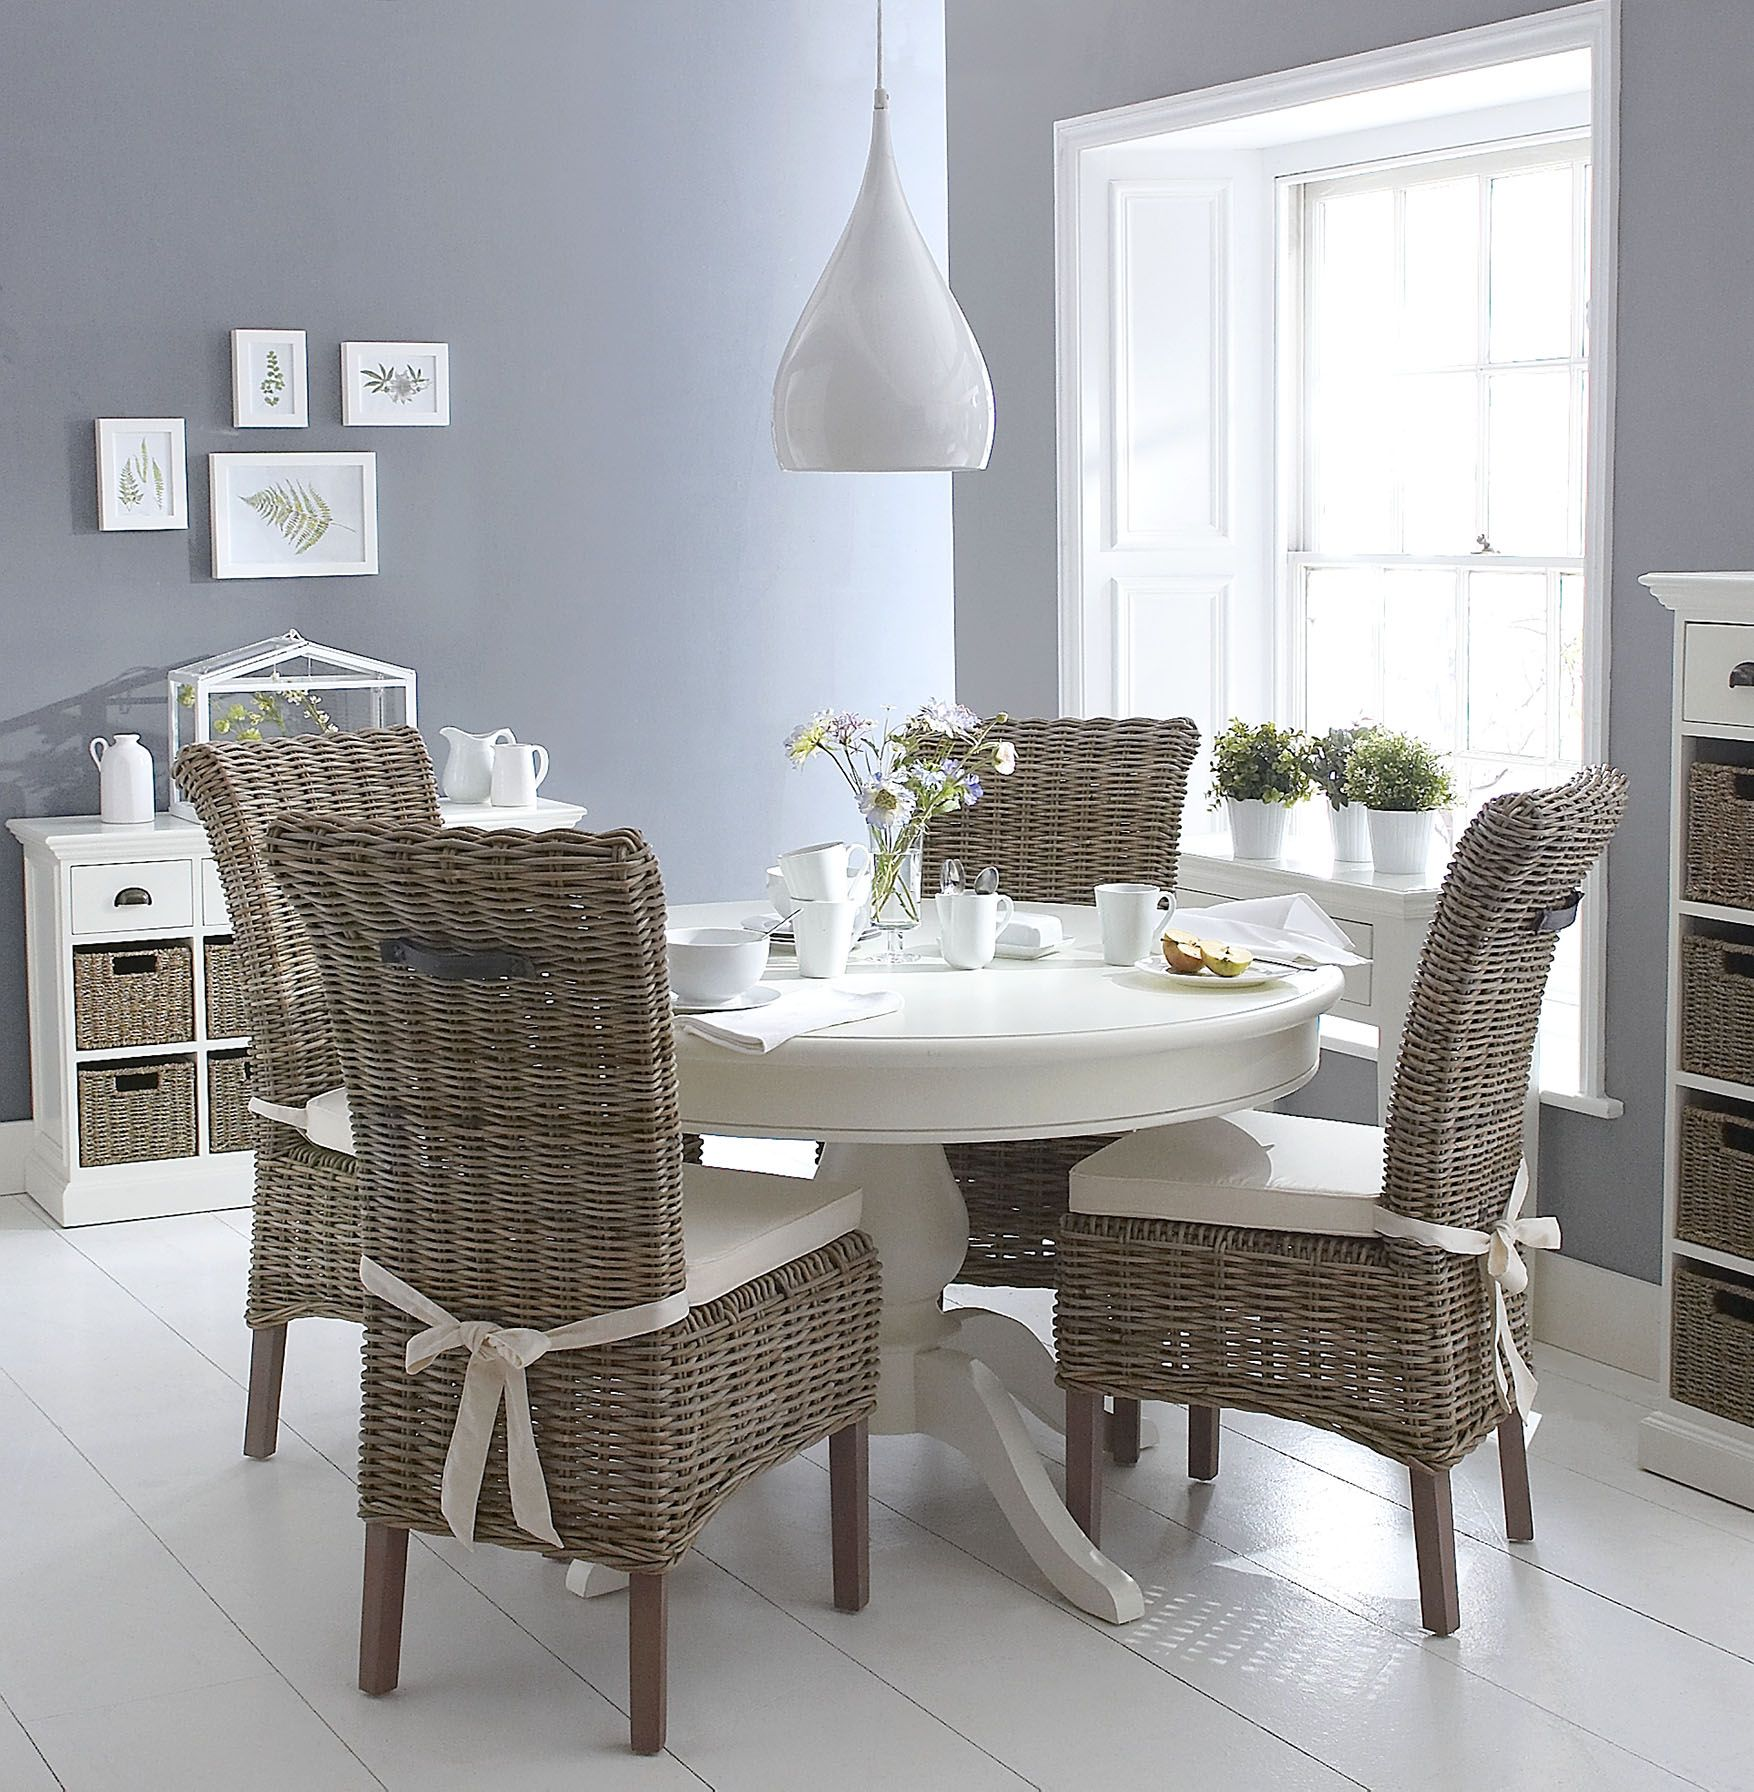 Kettle interiors glee16 white round dining table